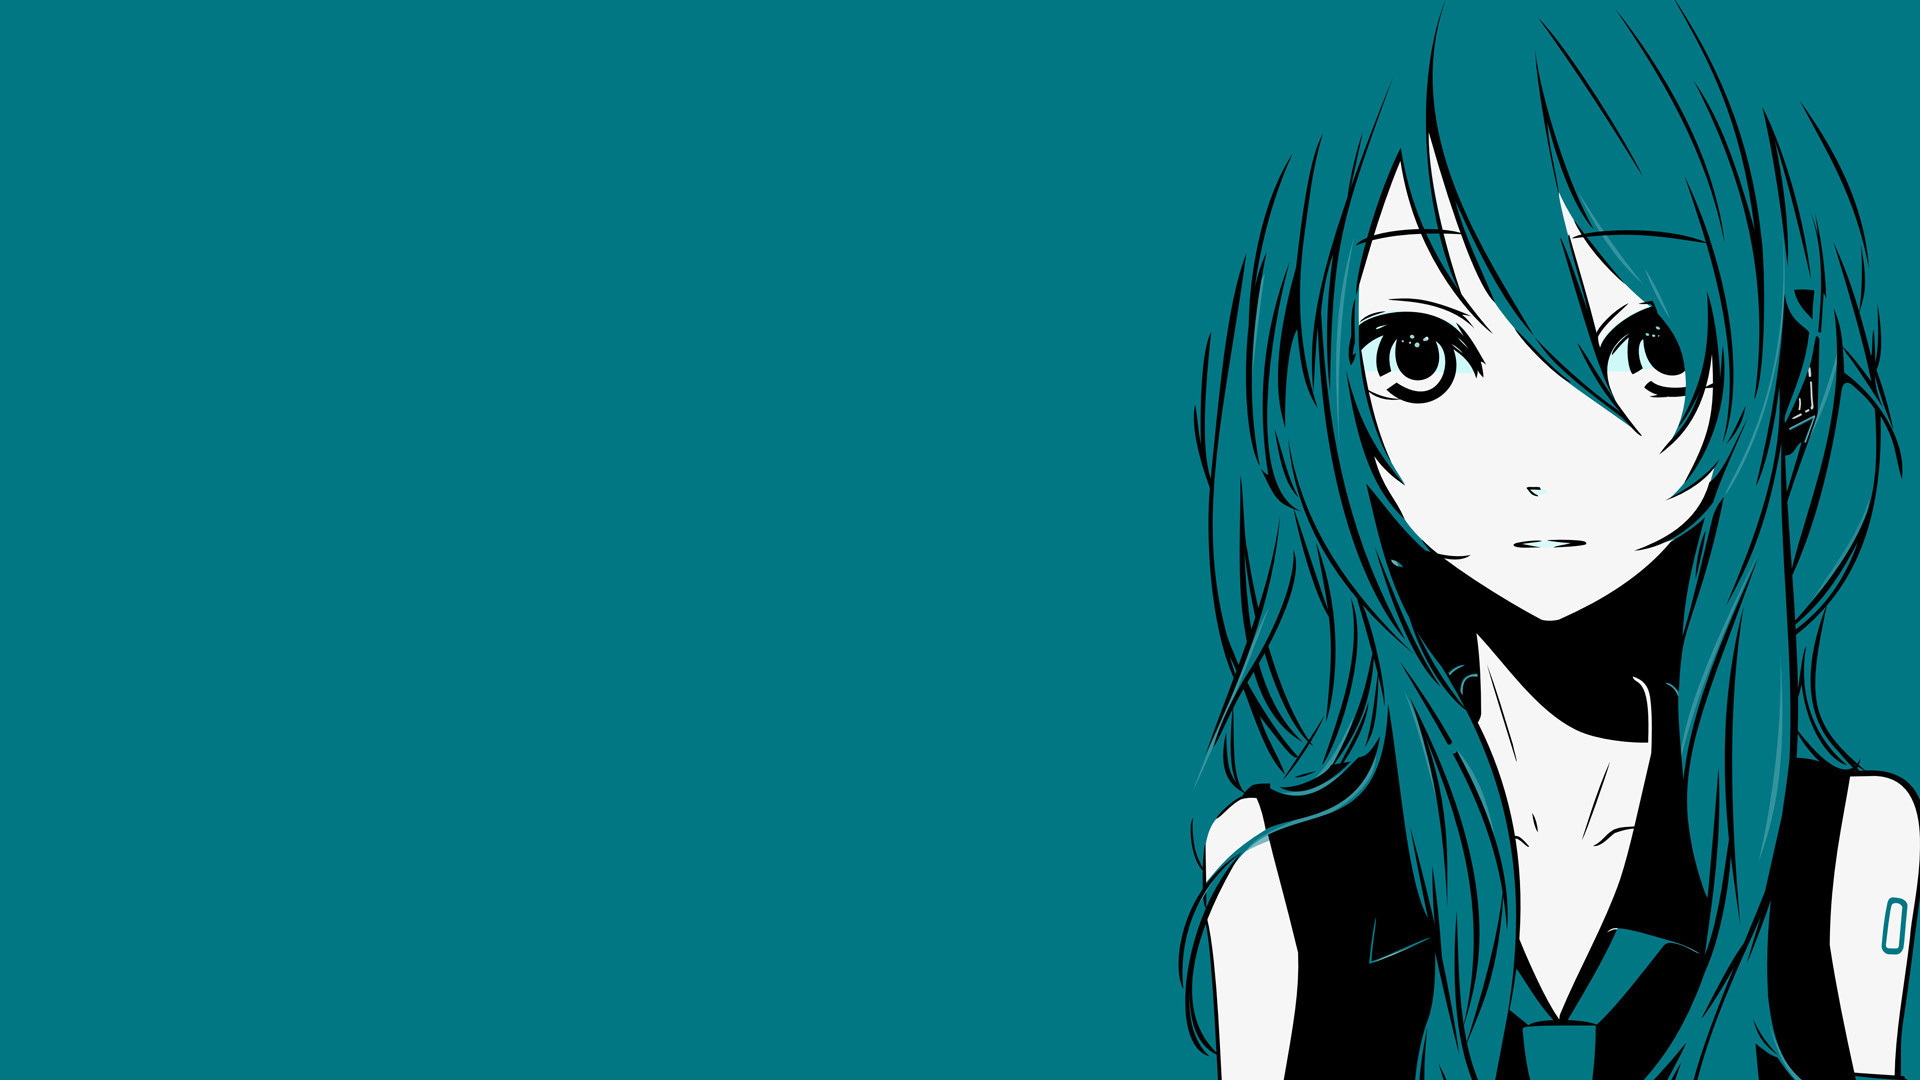 1228 Anime Girls high quality wallpapers for your PC, mobile phone, iPad,  iPhone. page number 13